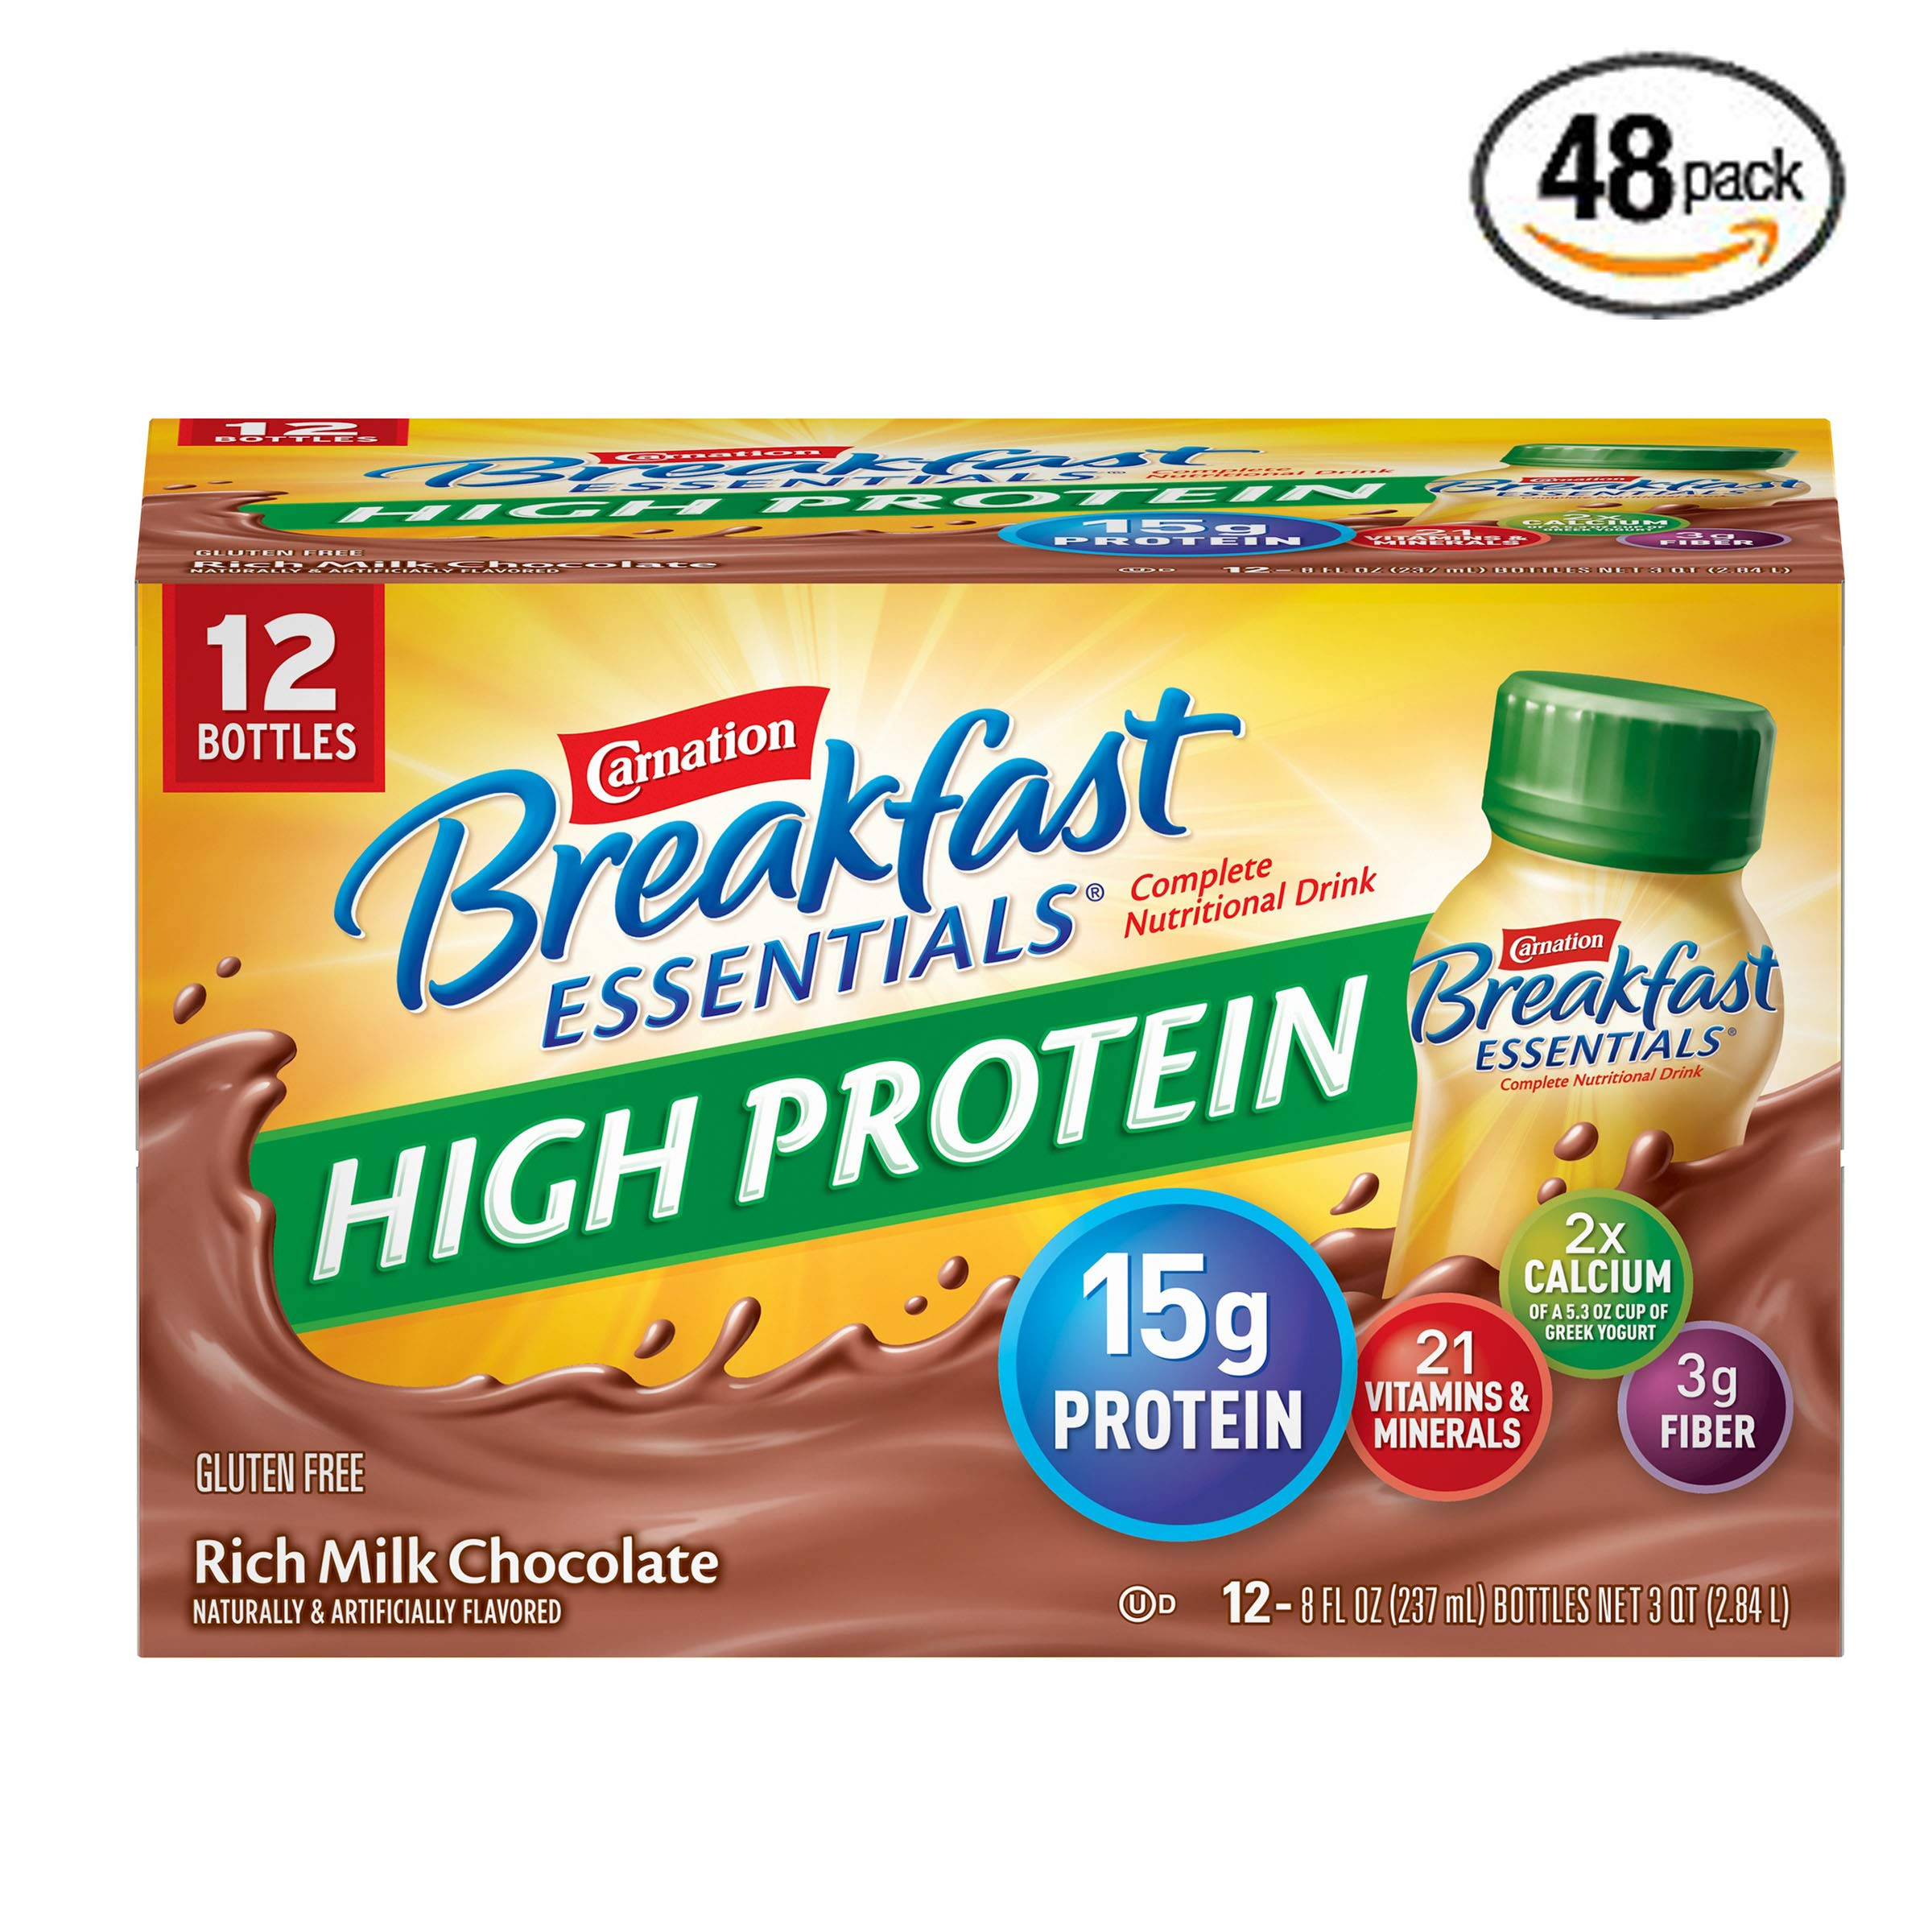 Carnation Breakfast Essentials High Protein Ready To Drink, Rich Milk Chocolate, 8 Fluid Ounce - Pack of 48